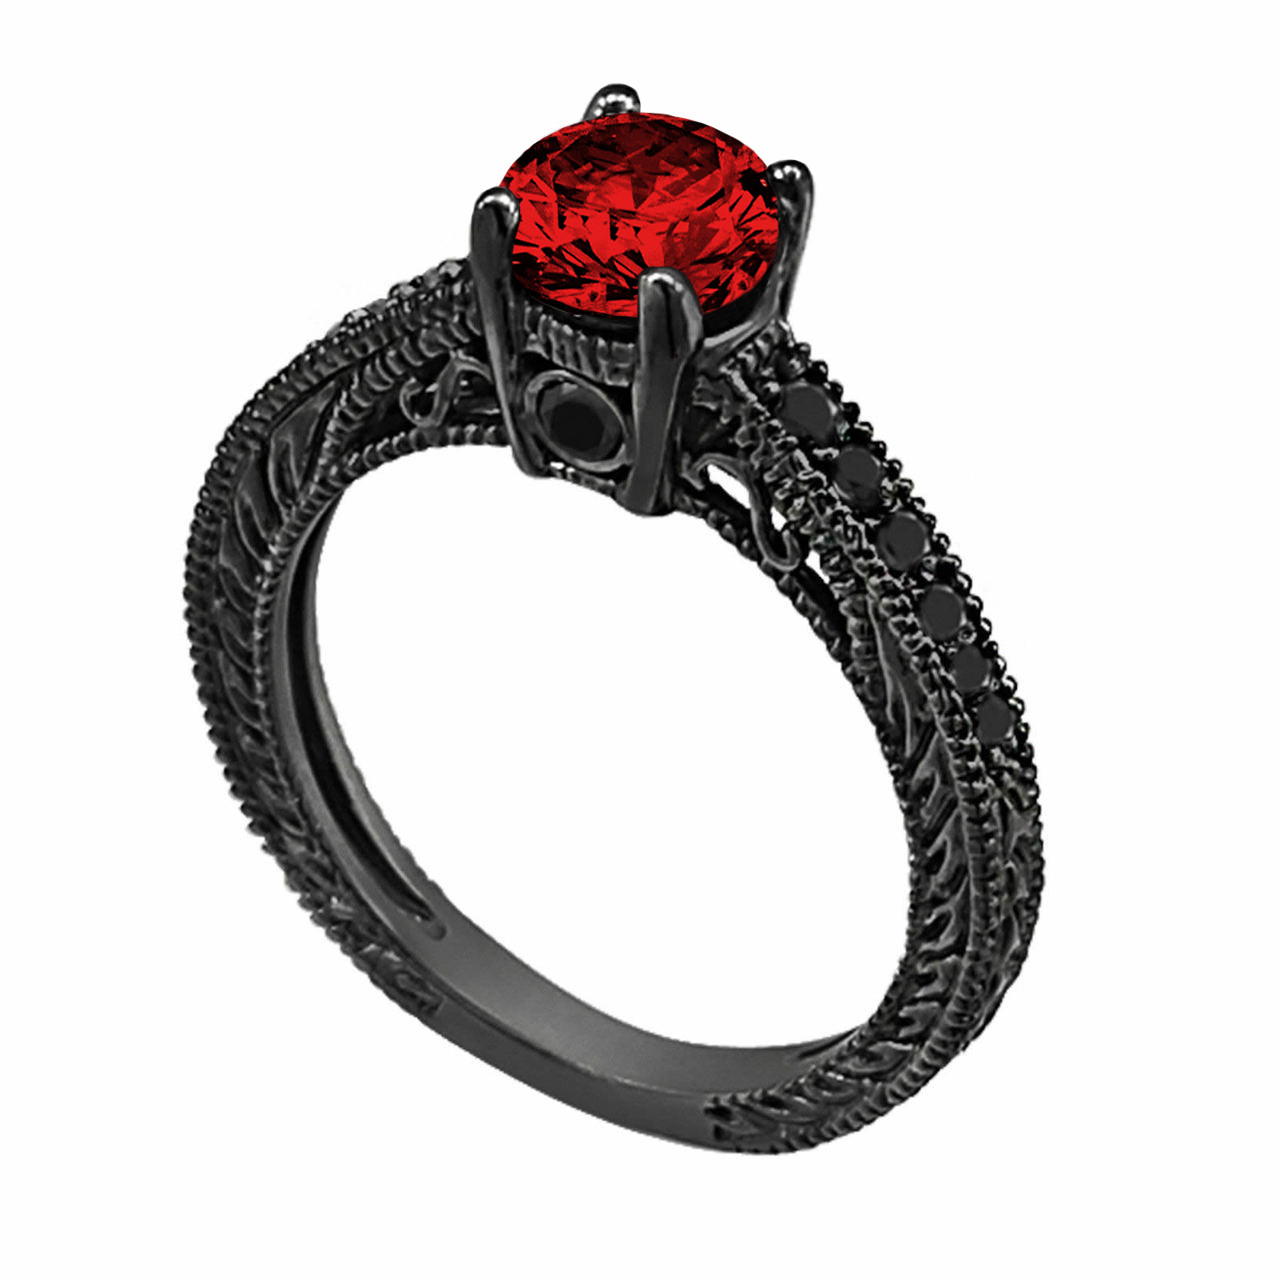 Engagement Rings With Black: 0.71 Carat Fancy Red And Black Diamond Engagement Ring 14K